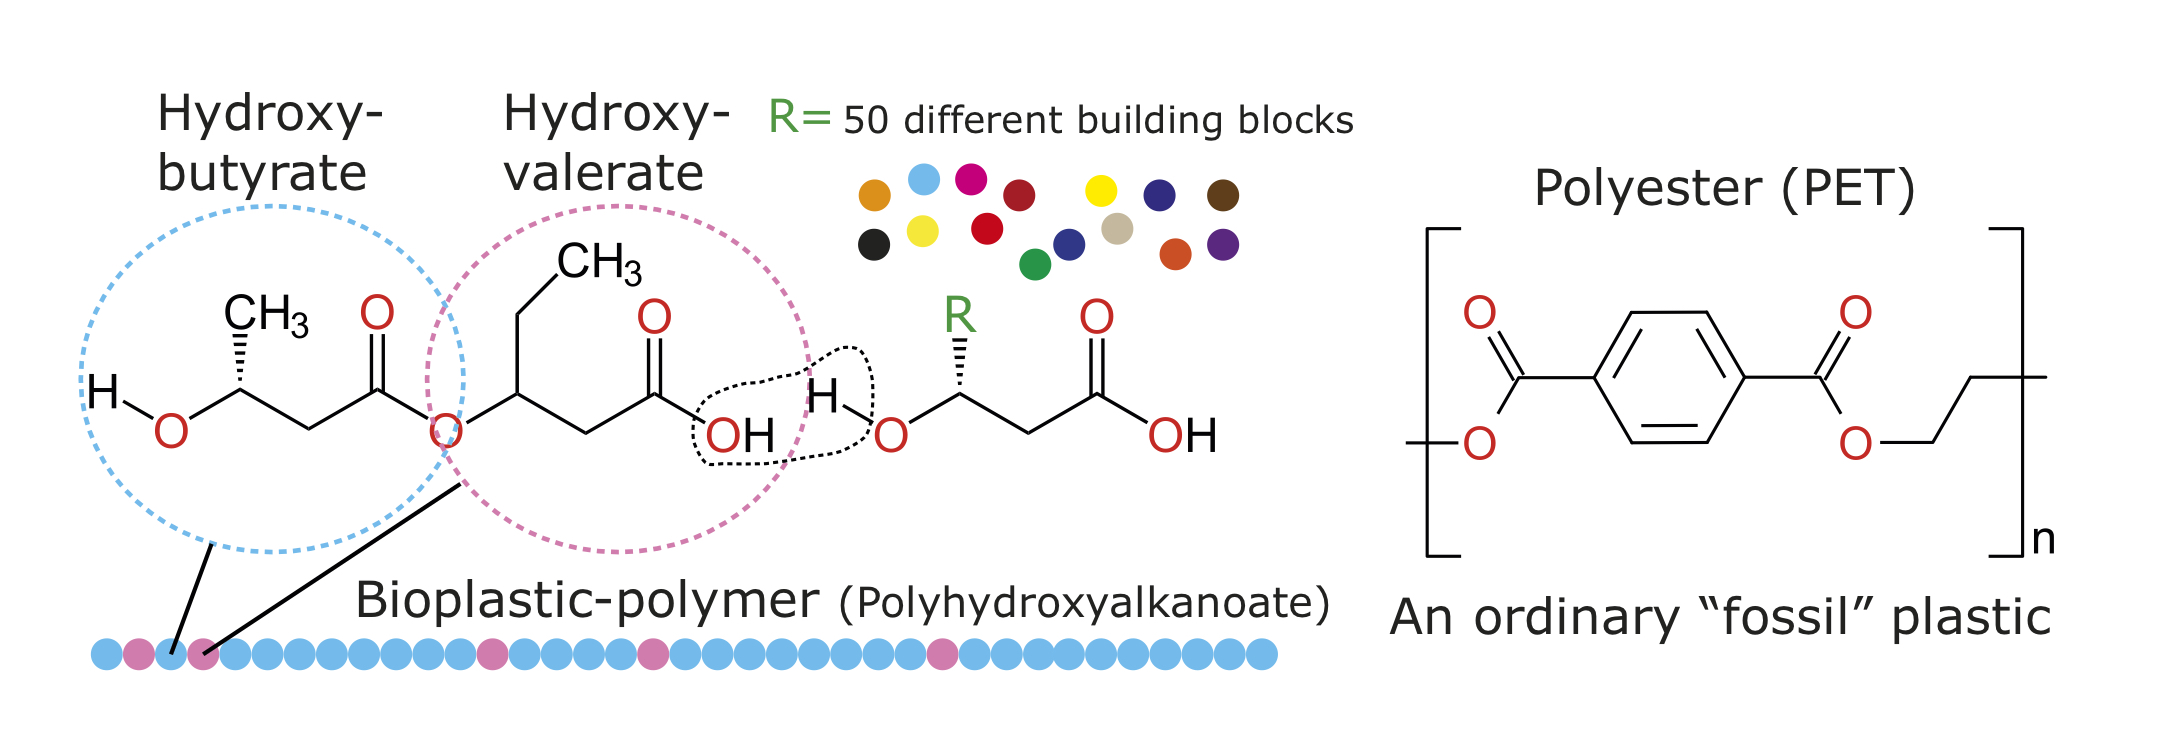 "Biodegradable polyhydroxyalkanoate (left) and conventional polyester (right) are similar in structure. The ""R"" group in the PHA molecule represents a wide range of chemical substituents that can give the polymer different characteristics. Ordinary plastic is highly resistant to breakdown by microorganisms."